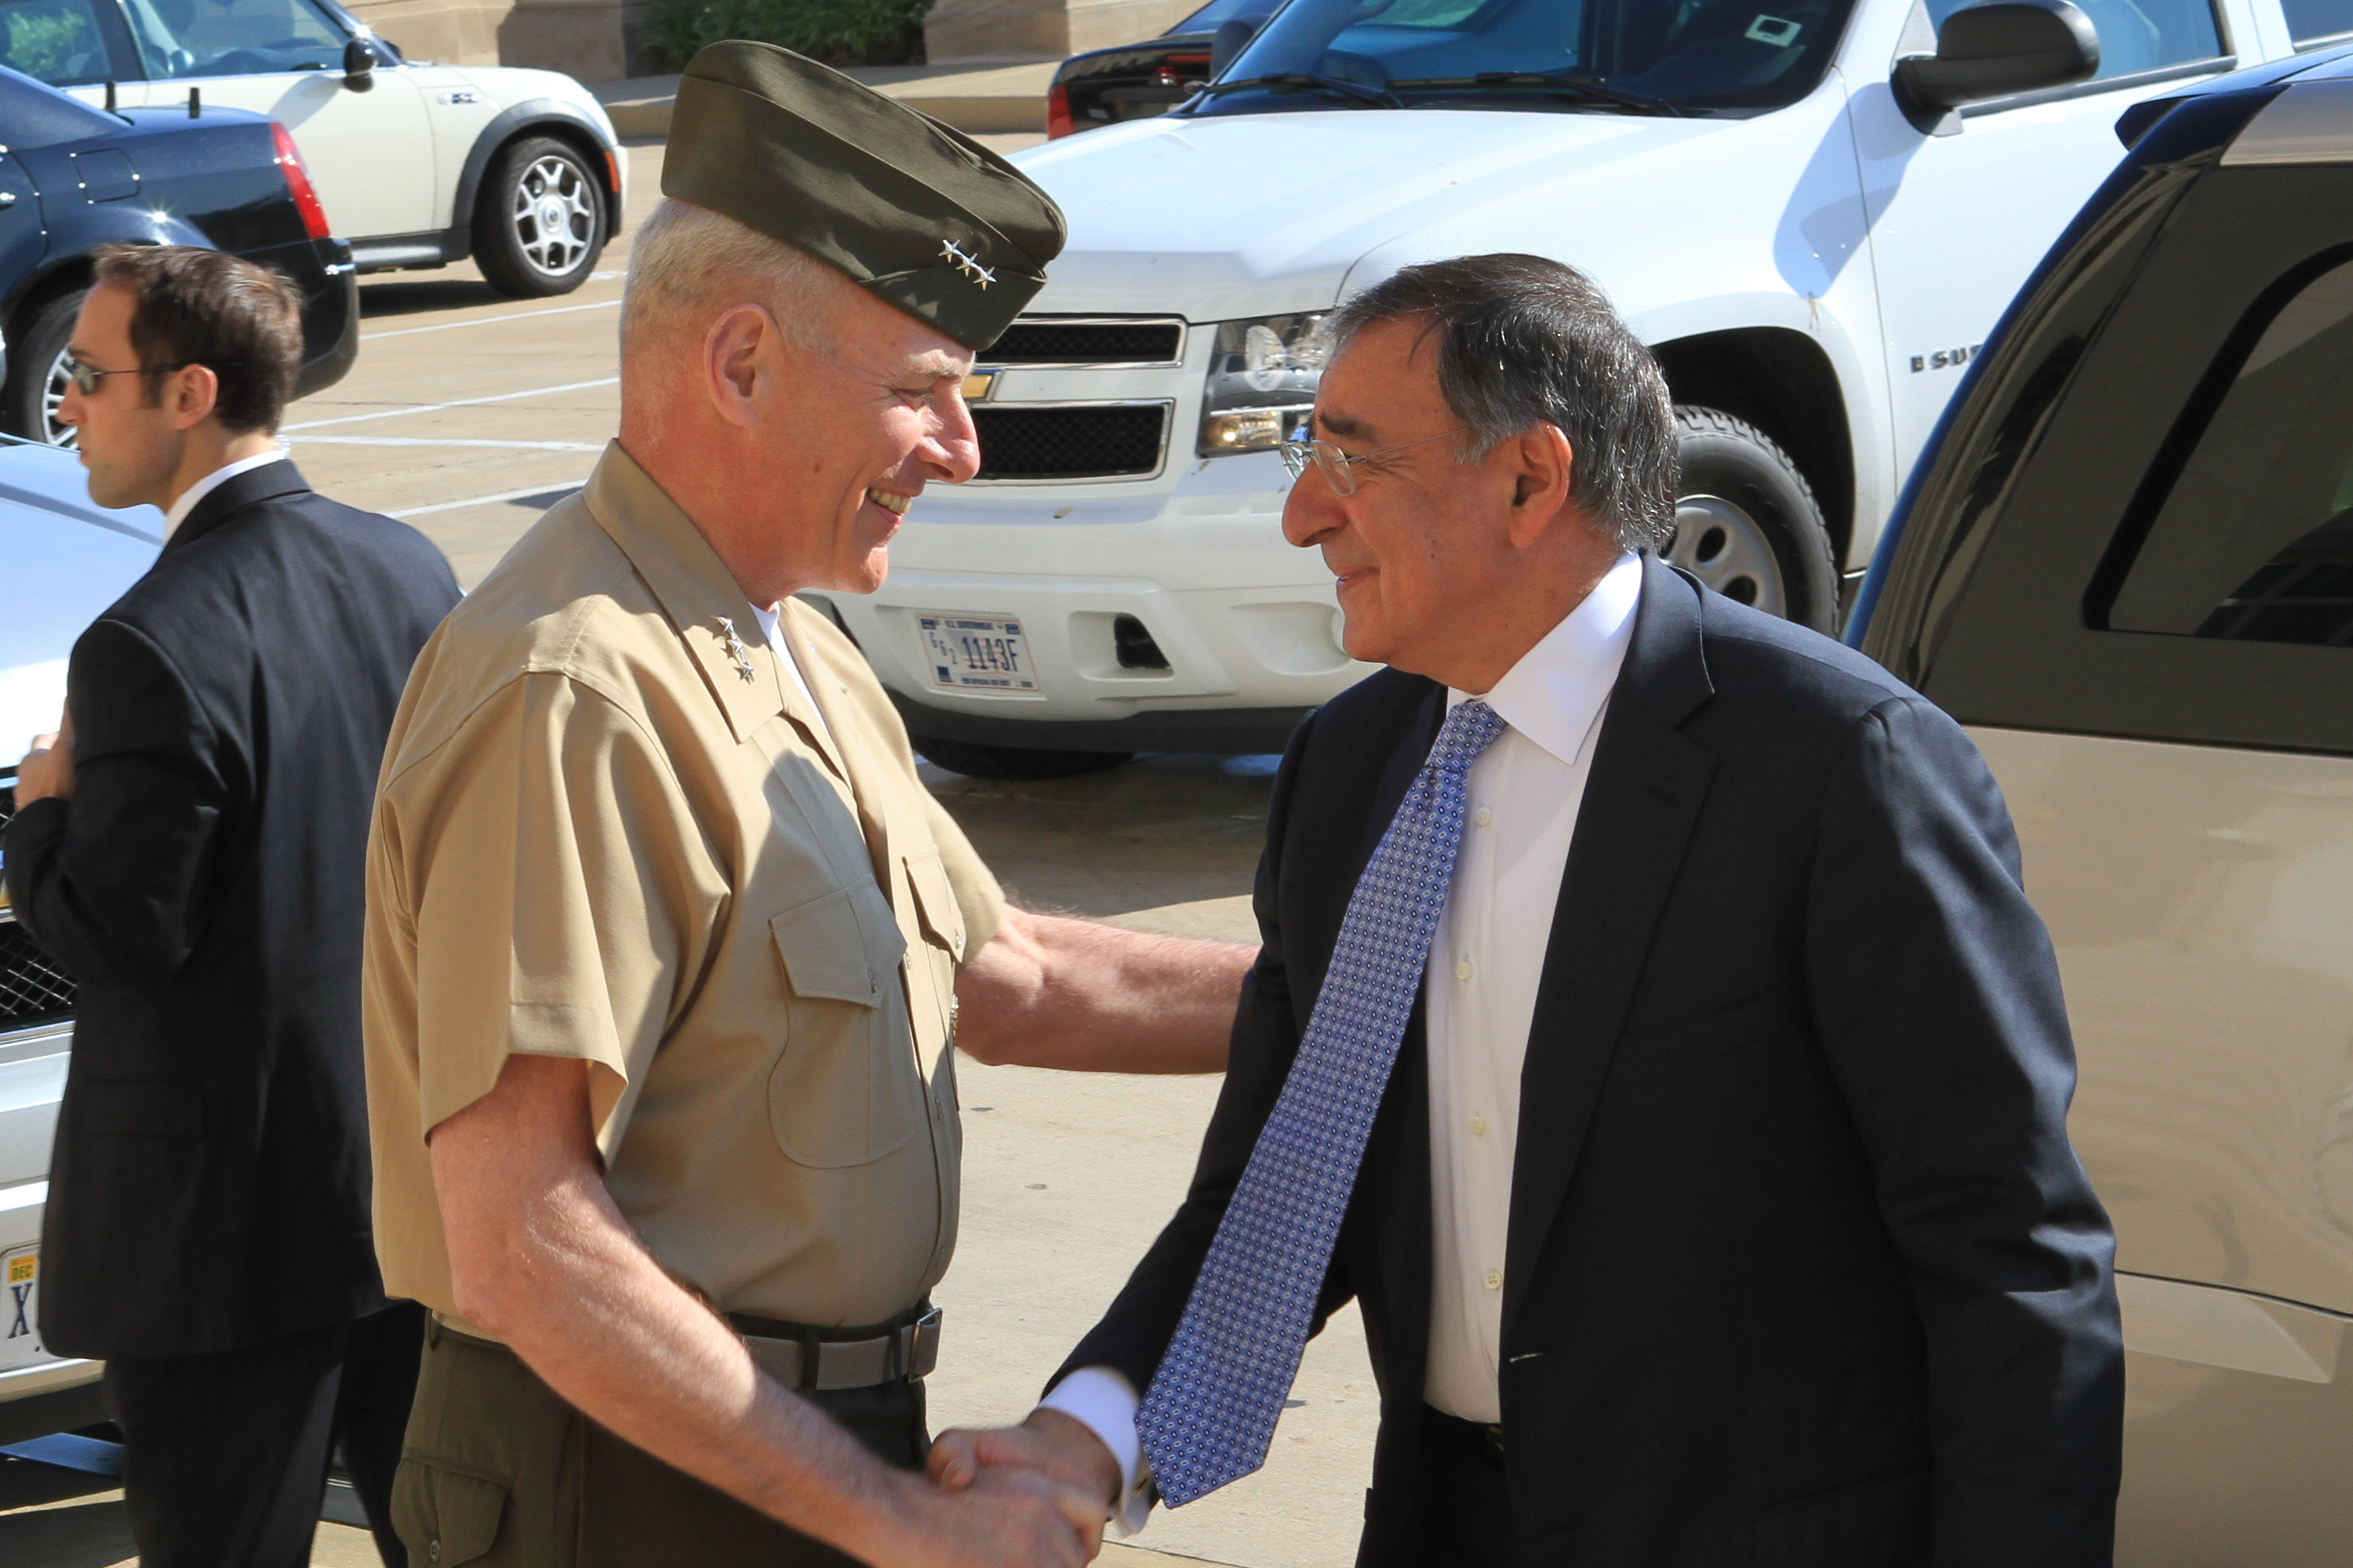 New Defense Secretary arrives at Pentagon